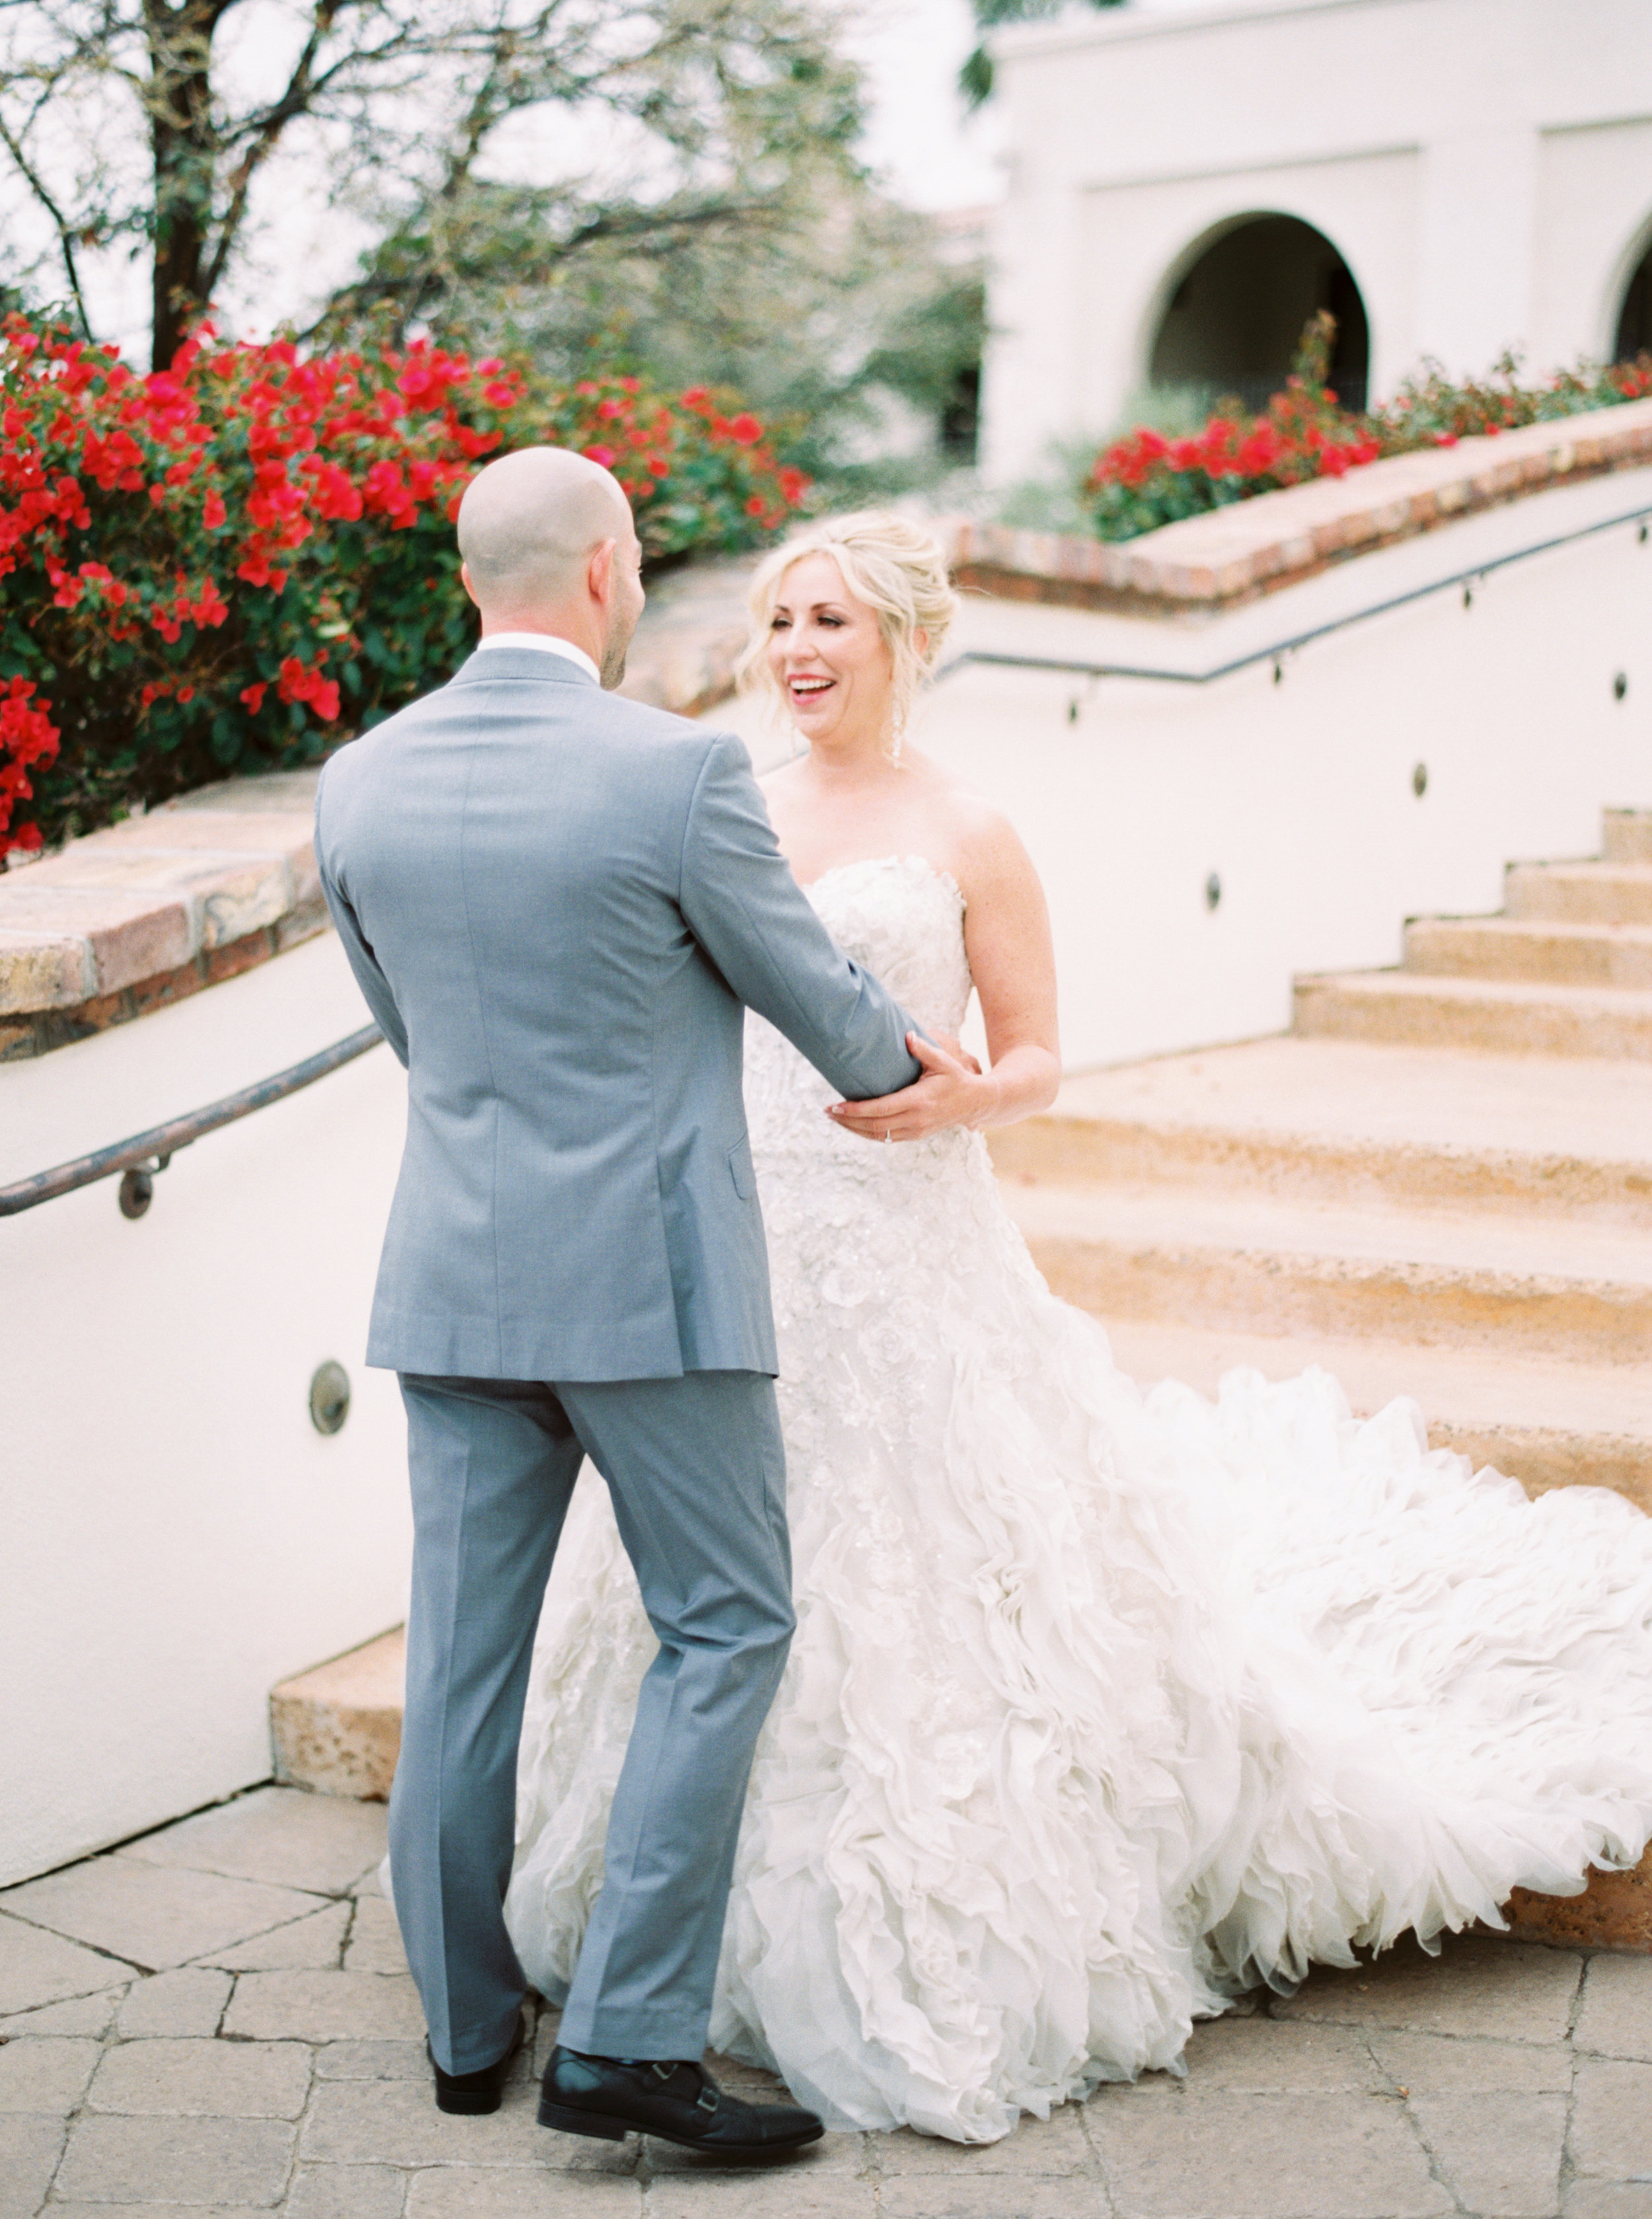 14 first look bride and groom first look happy bride photos before ceremony Life Design Events photos by Melissa Jill Photography.jpg